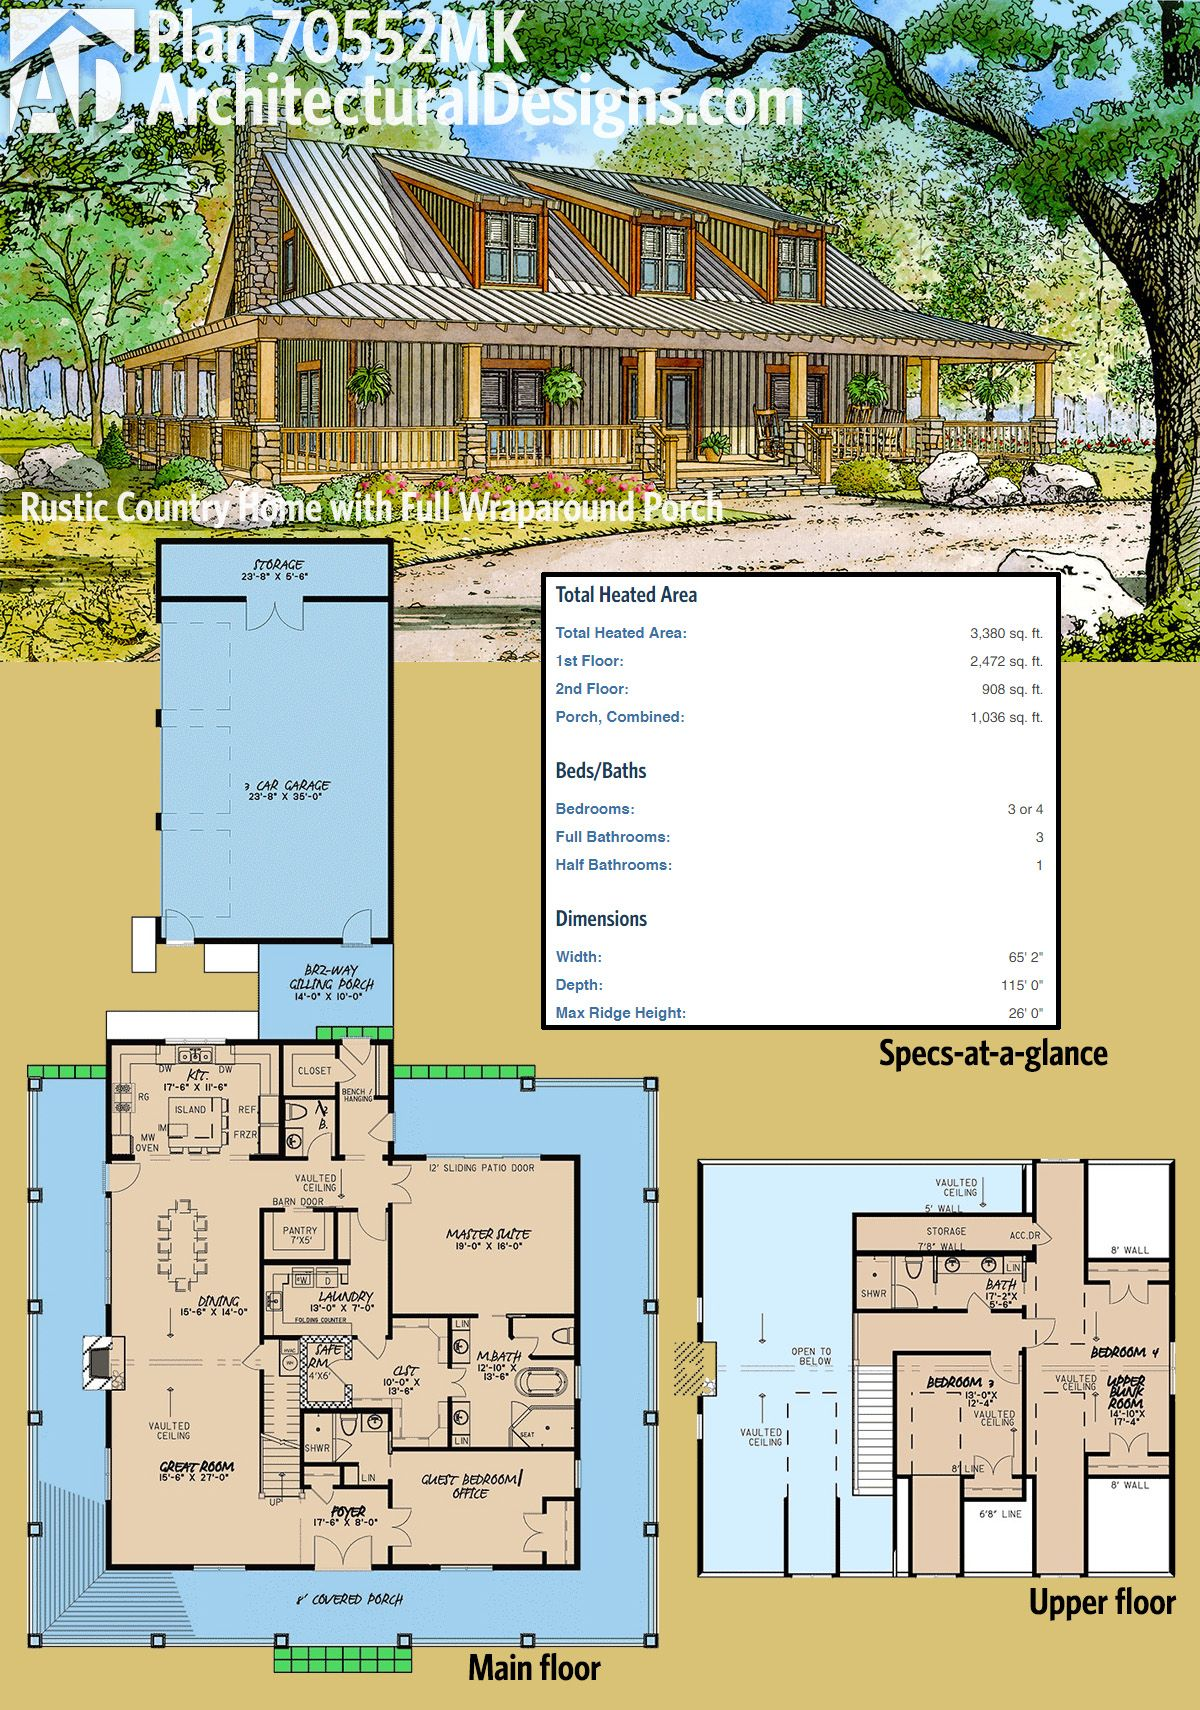 Architectural designs rustic country home plan 70552mk has a full wraparound porch and a bunk room upstairs over 3300 square feet of heated living space